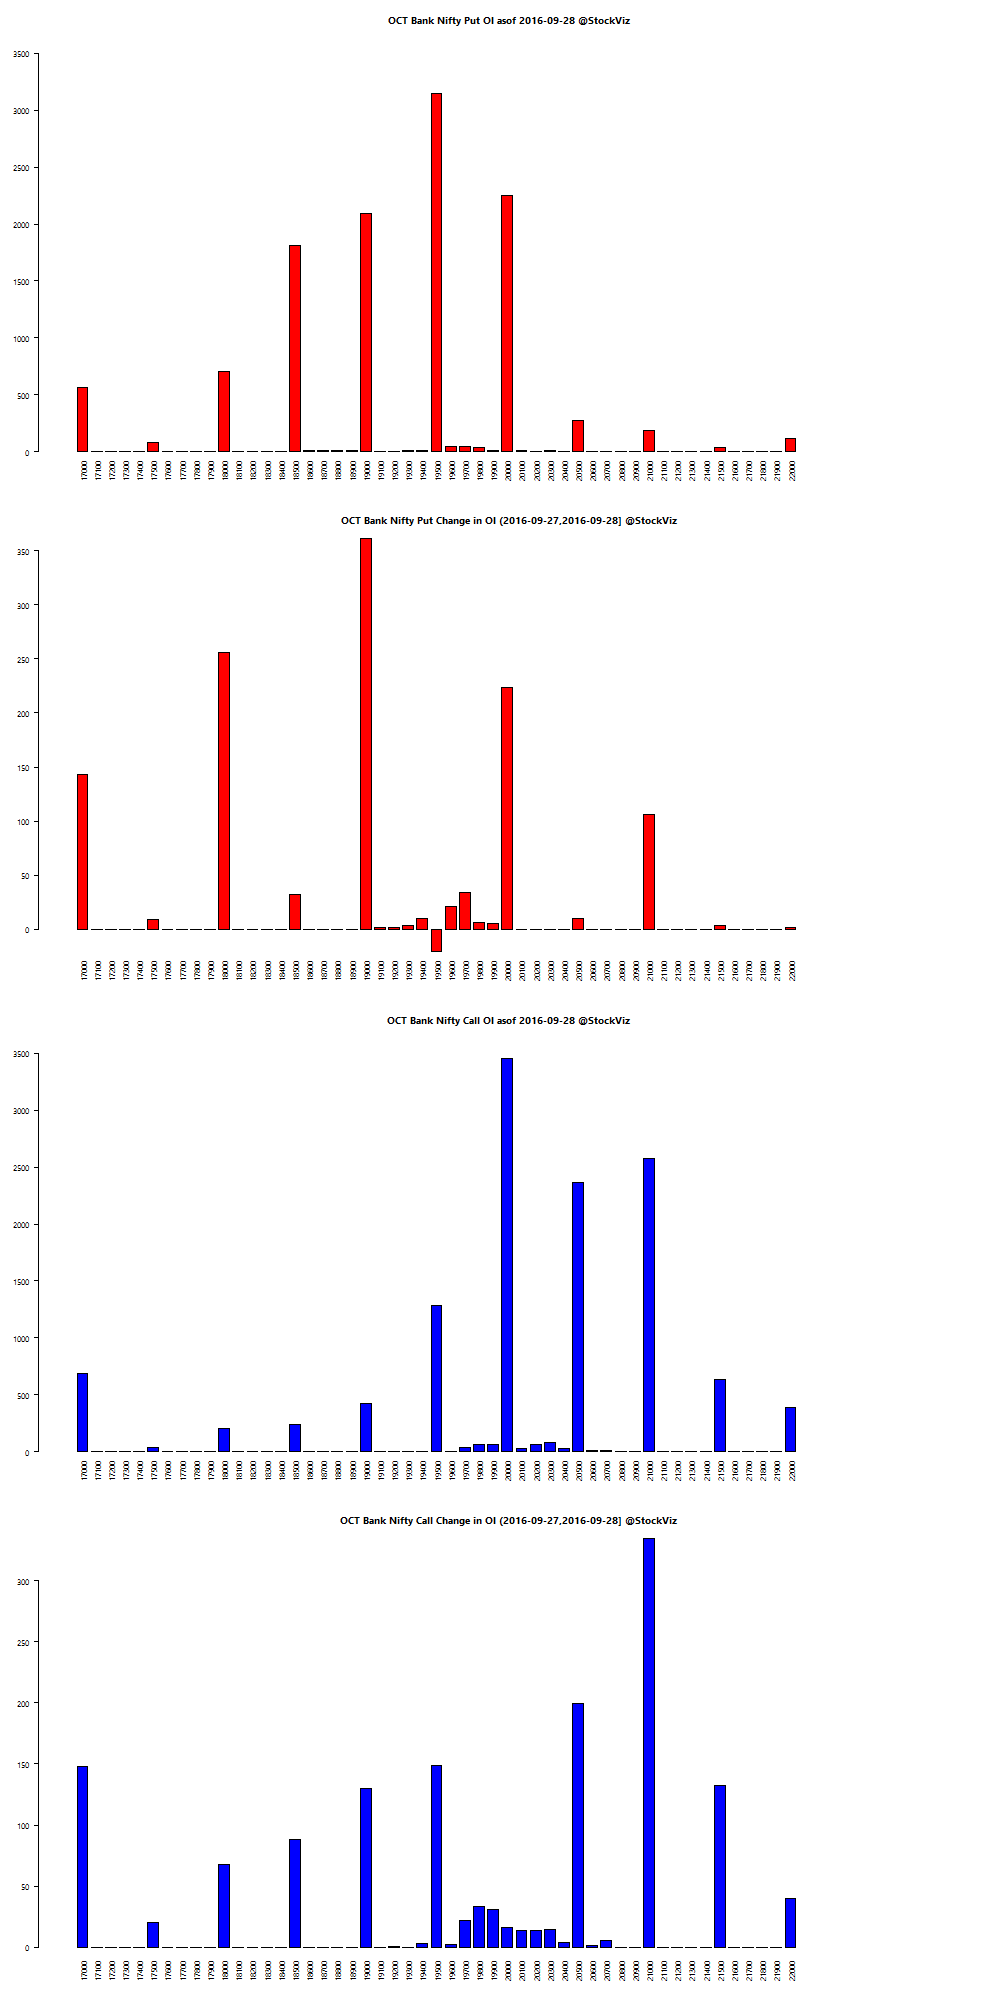 OCT BANKNIFTY OI chart